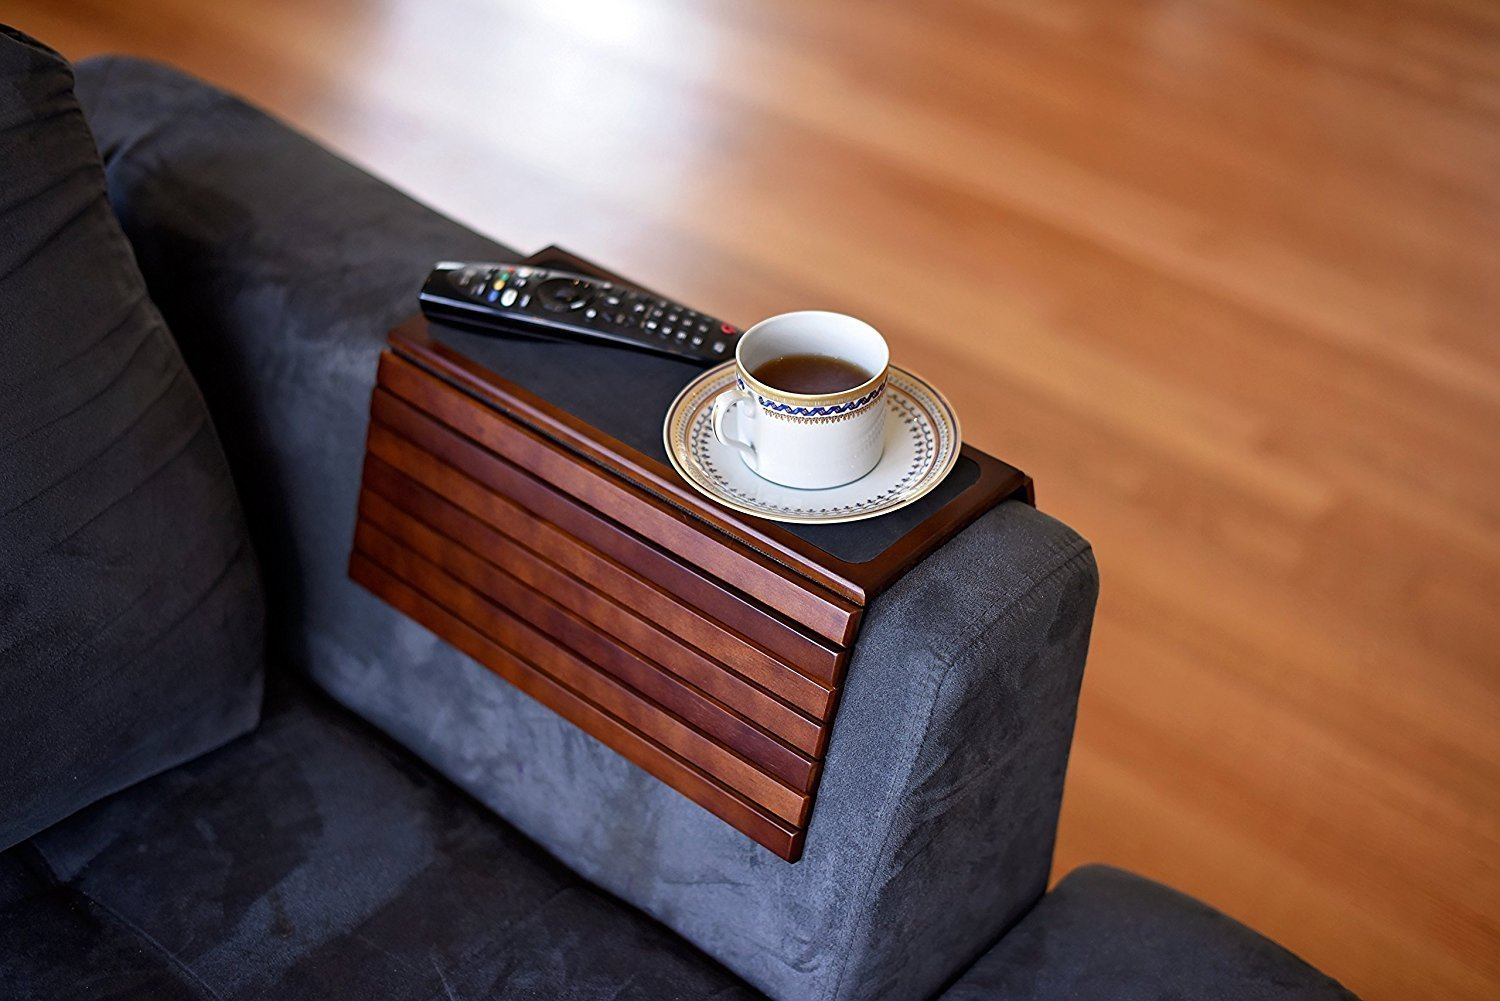 baarbird Sofa Armrest Table Tray Round and Square Couch, Loveseat, Recliner Rest for Drinks, TV Controls, Laptop Mice | Non-Slip Surface and Bottom >>> BUY 2 GET 10% OFF by baarbird (Image #1)